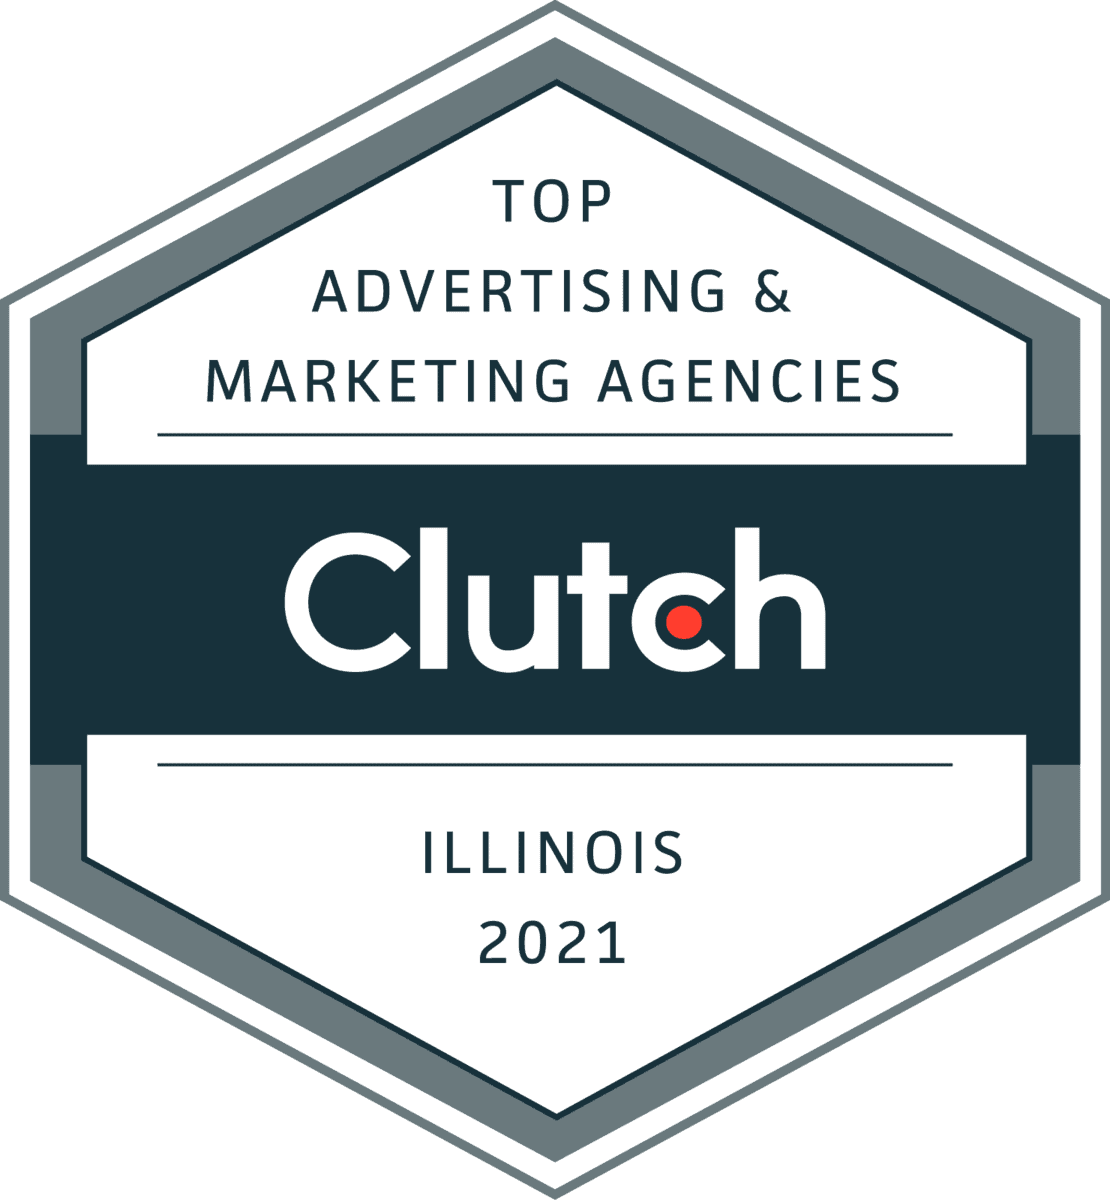 Clutch Names Chykalophia as a Top Marketing Company in Illinois for 2021